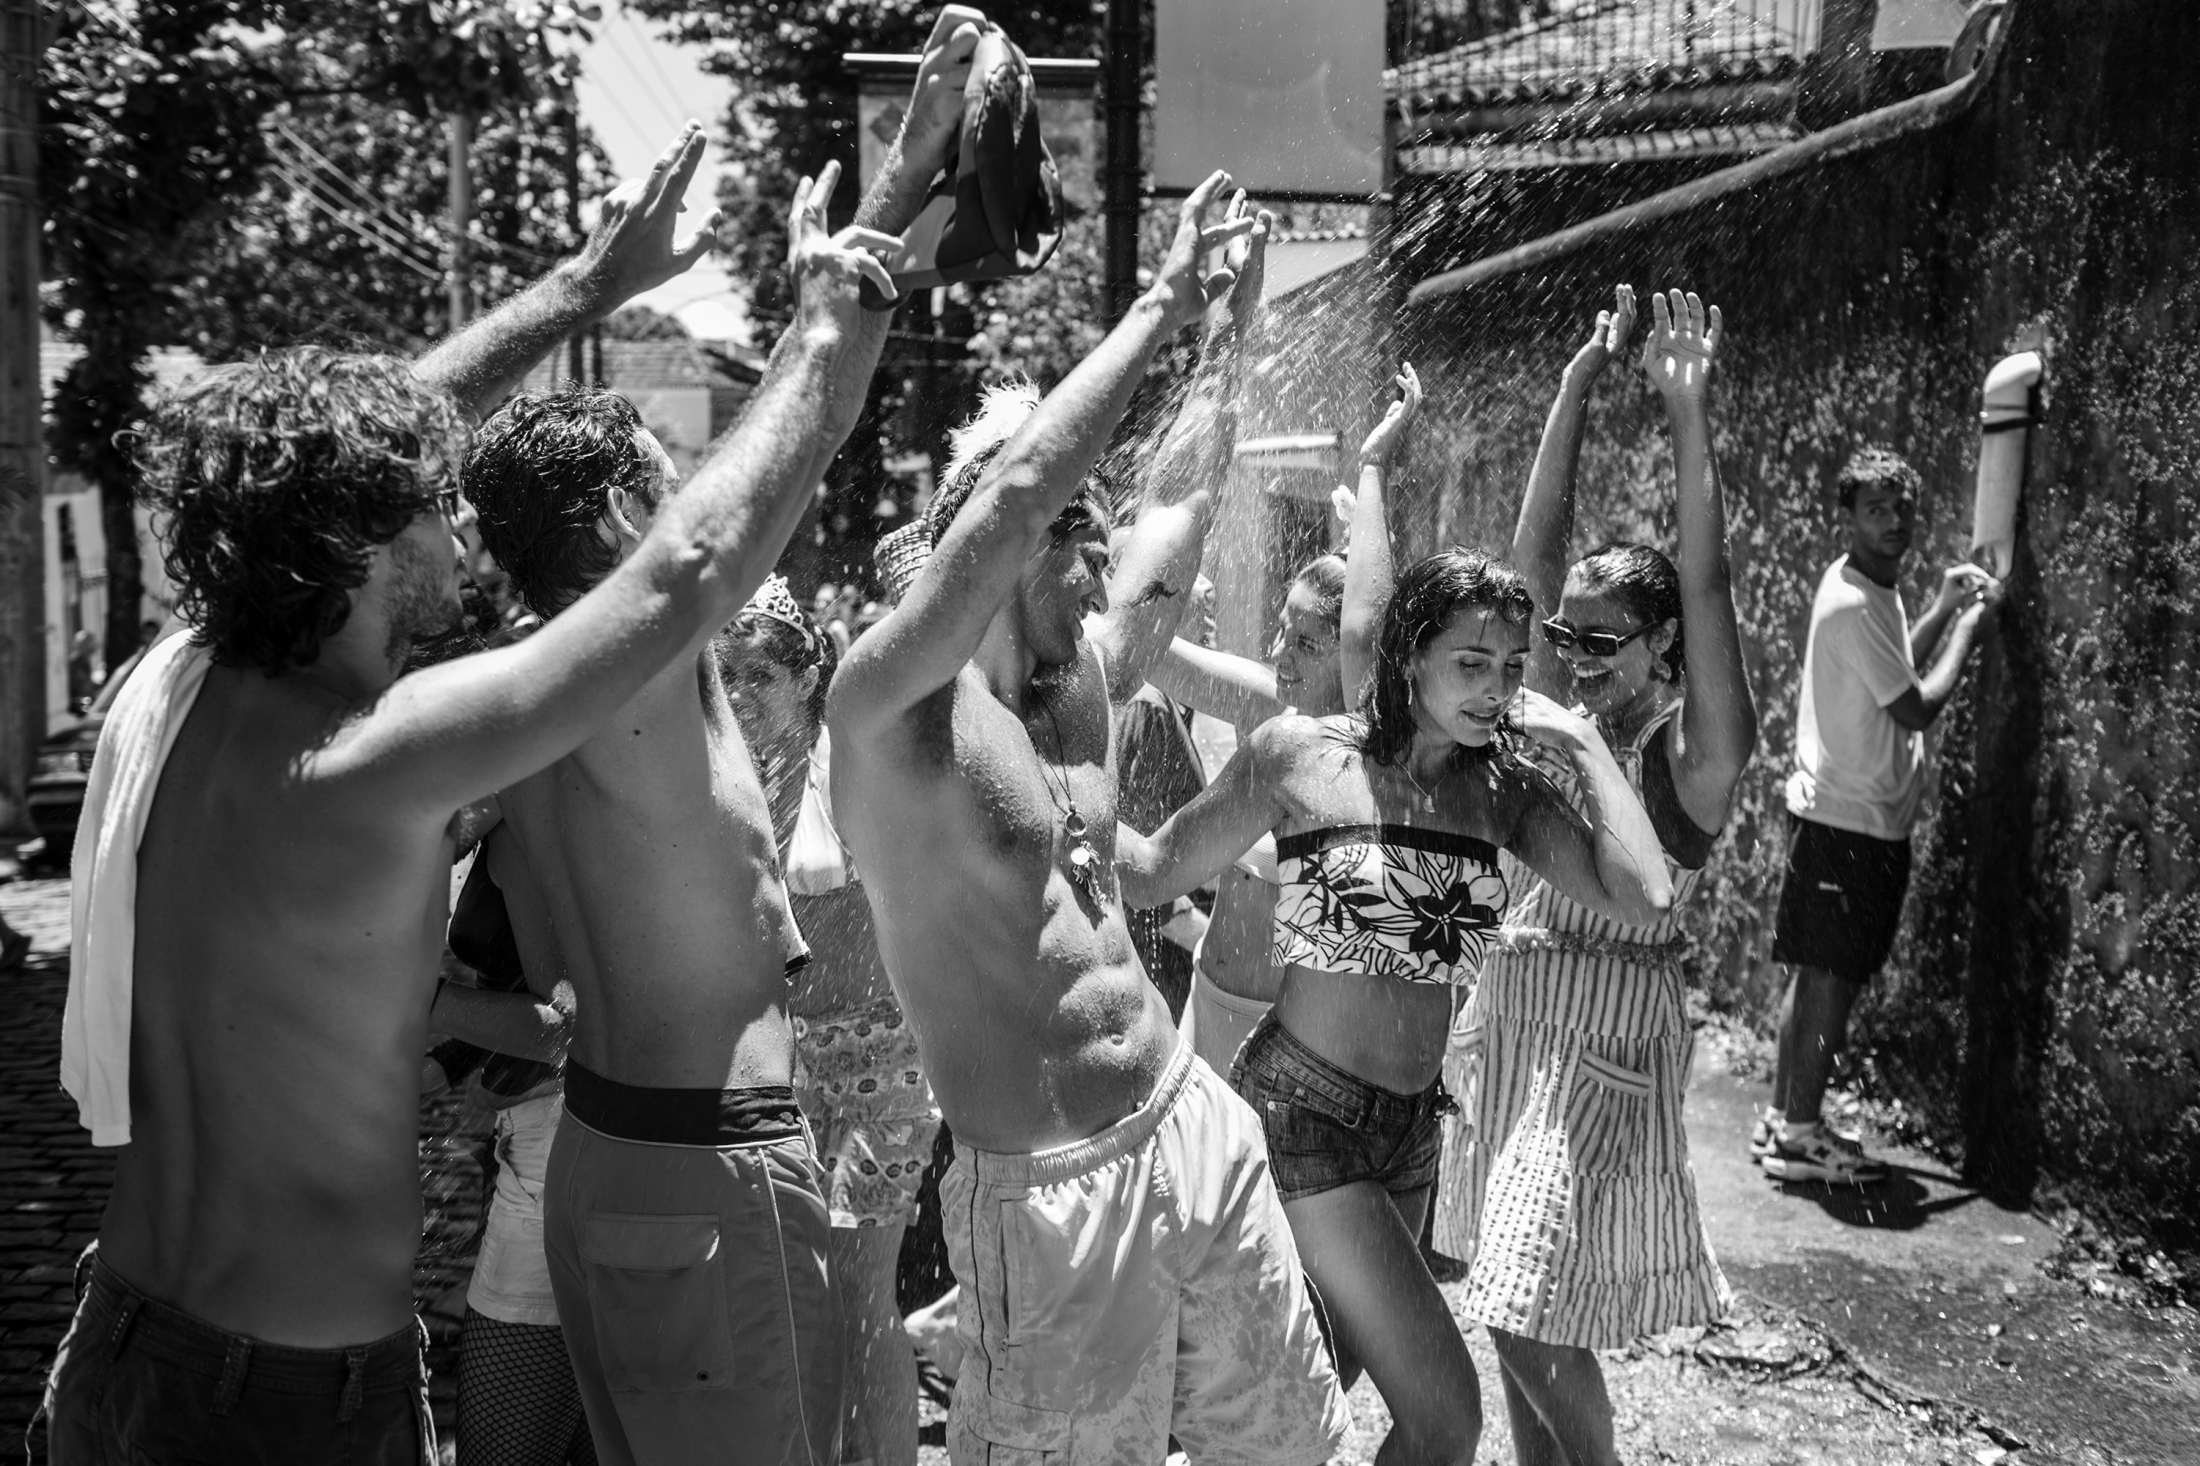 A group of young men and women has fun while water is being sprayed on them from a house during Céu na Terra carnival street party in Santa Teresa. February 2007.